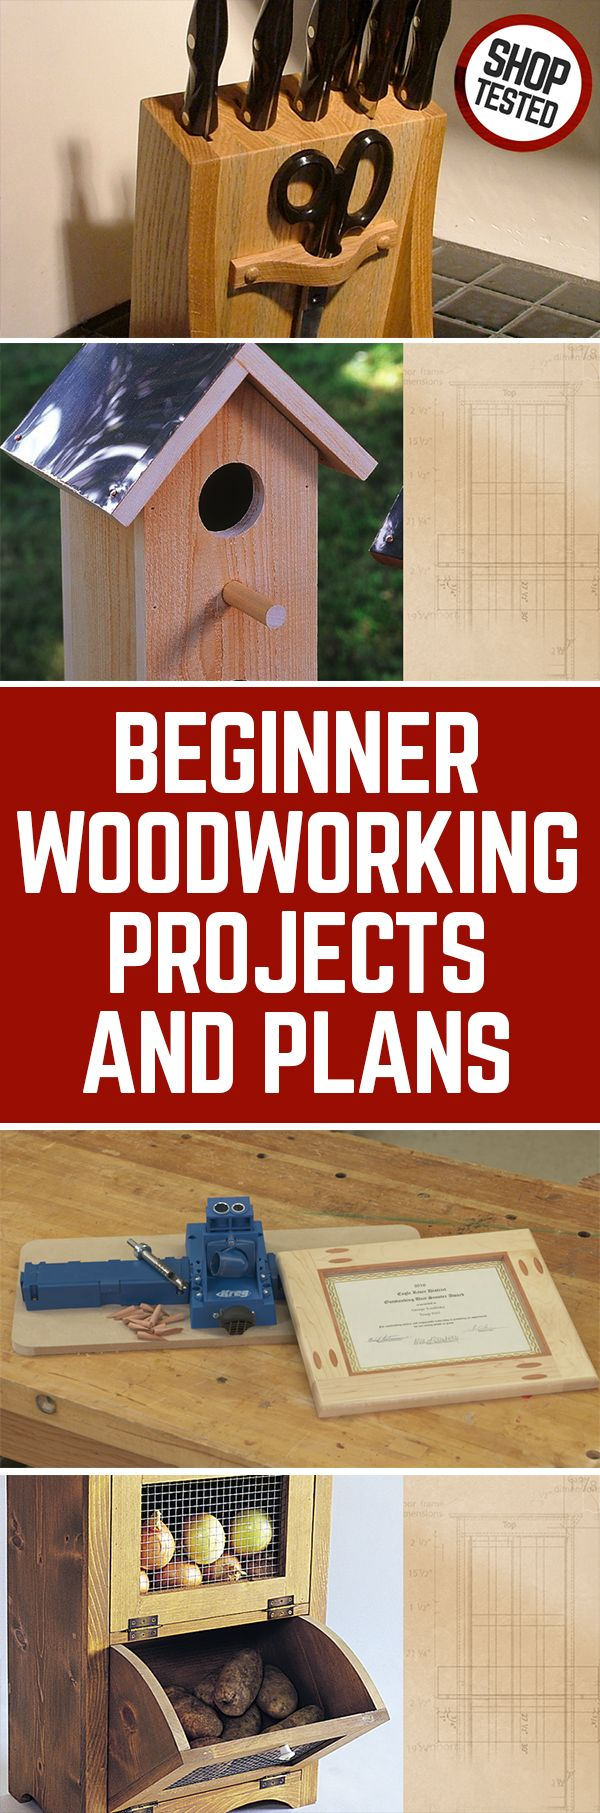 WWGOA welcomes you to our beginner woodworking projects video page! As a budding master woodworker our beginner woodworking online videos will teach you essential woodworking techniques. We encourage you to browse our free beginners woodworking projects videos and become a member to gain access to an even larger woodworking video library. #woodworkingbeginners